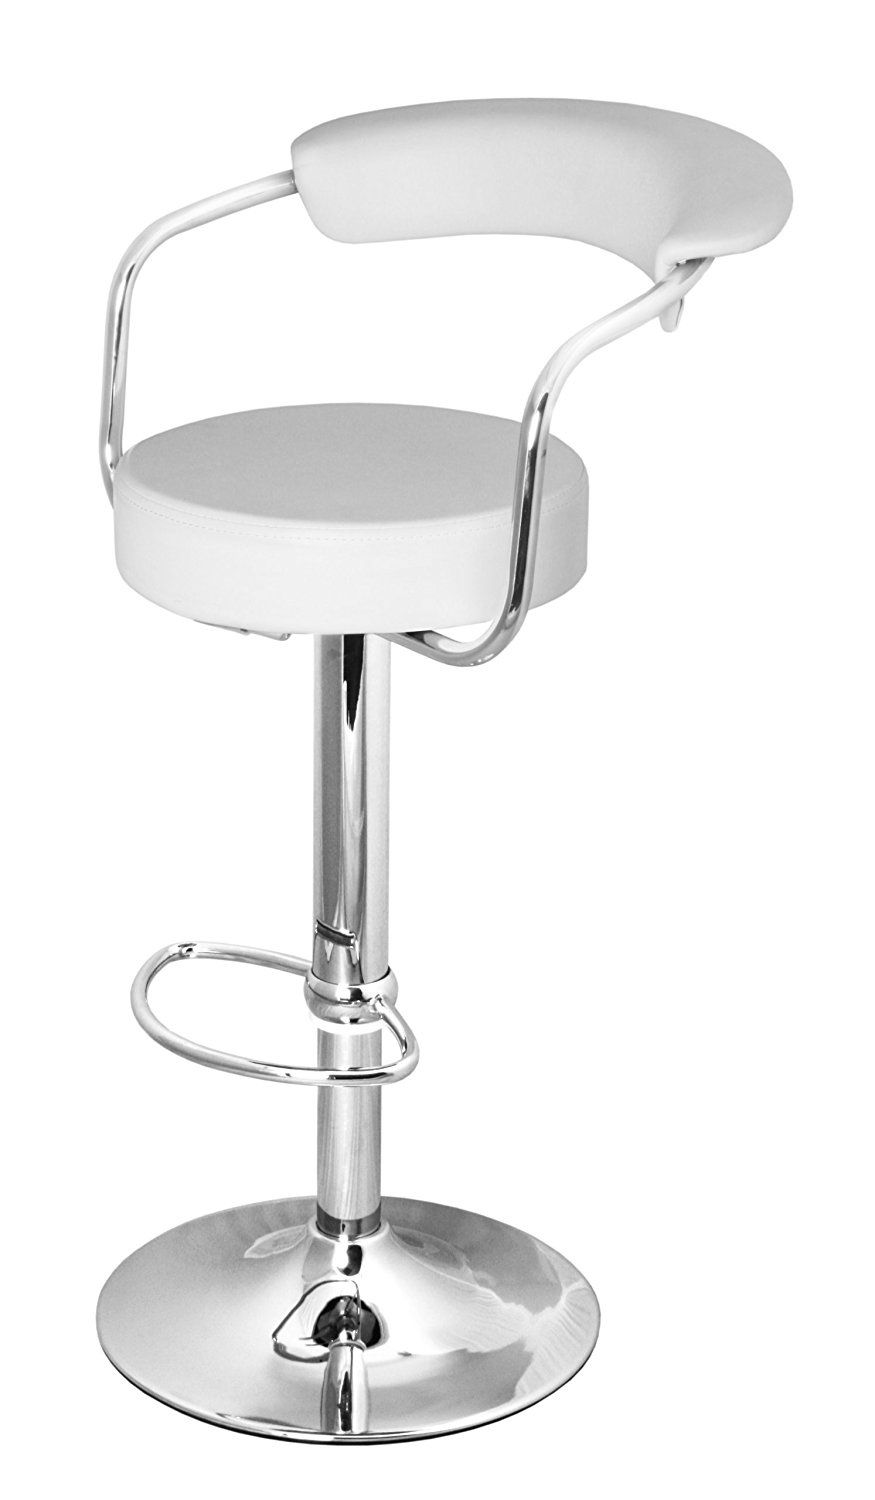 2019 White Faux Leather Bar Stools Modern Used Furniture Check More At